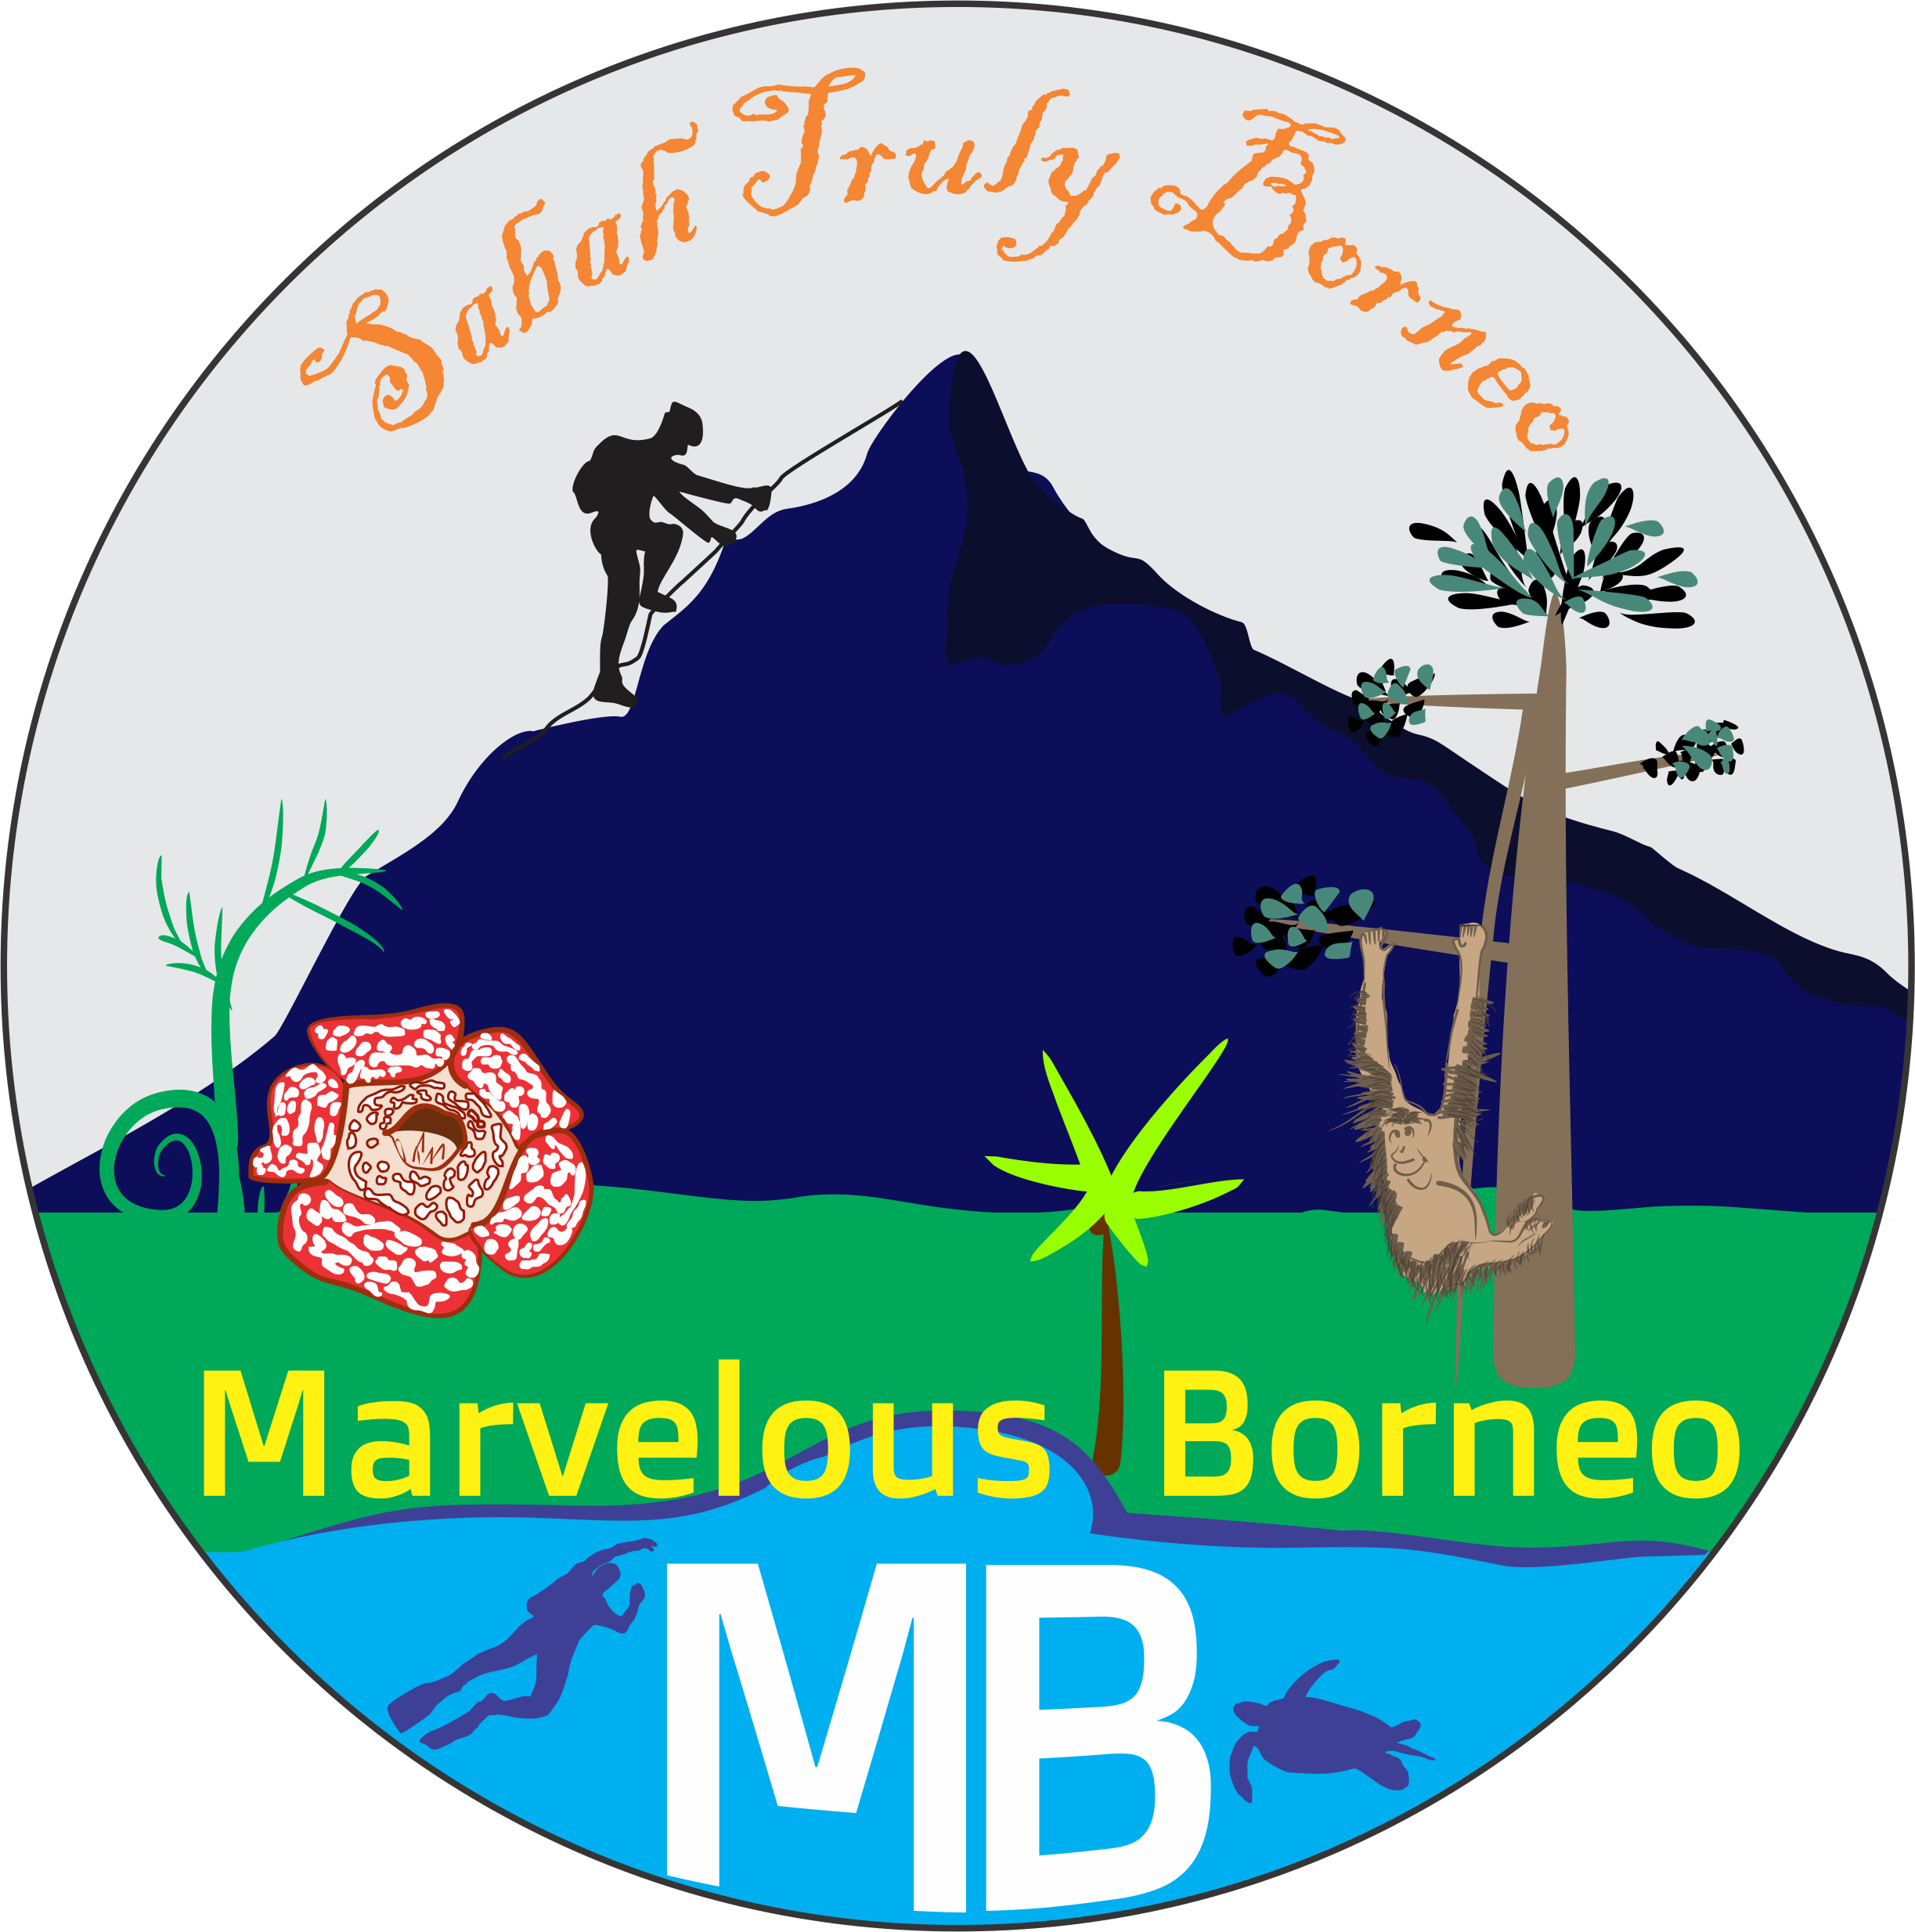 Marvelous Borneo